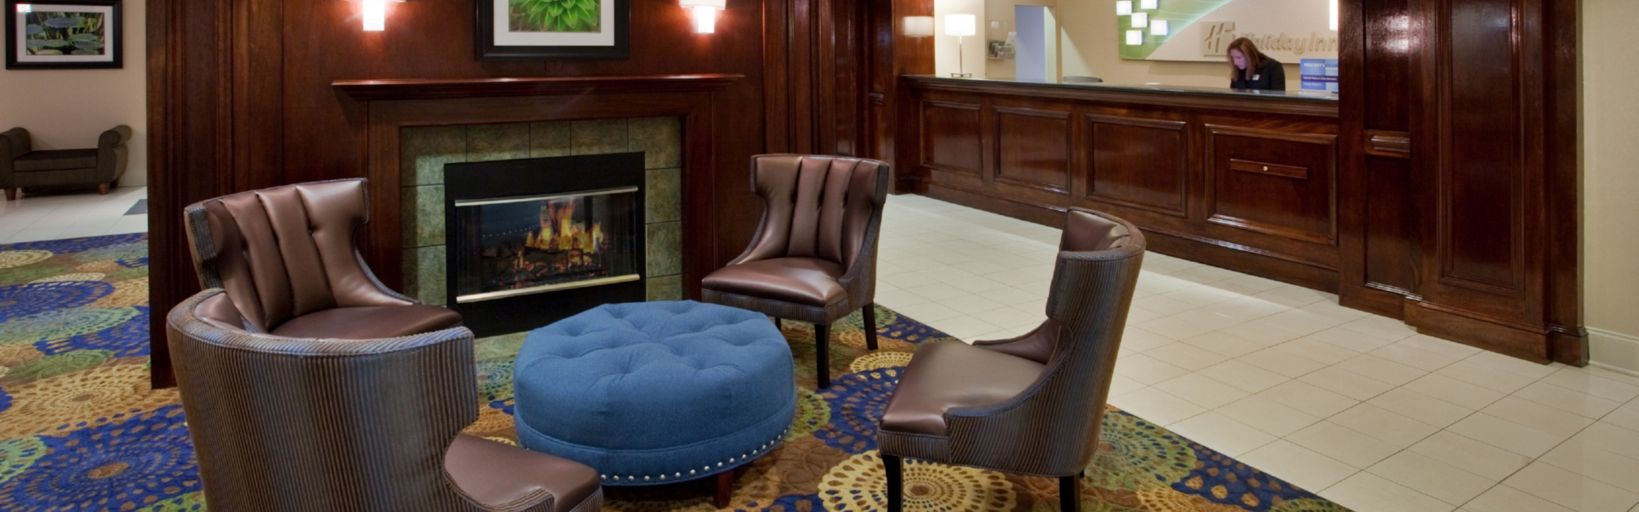 Holiday Inn Raleigh North - Midtown Hotel by IHG